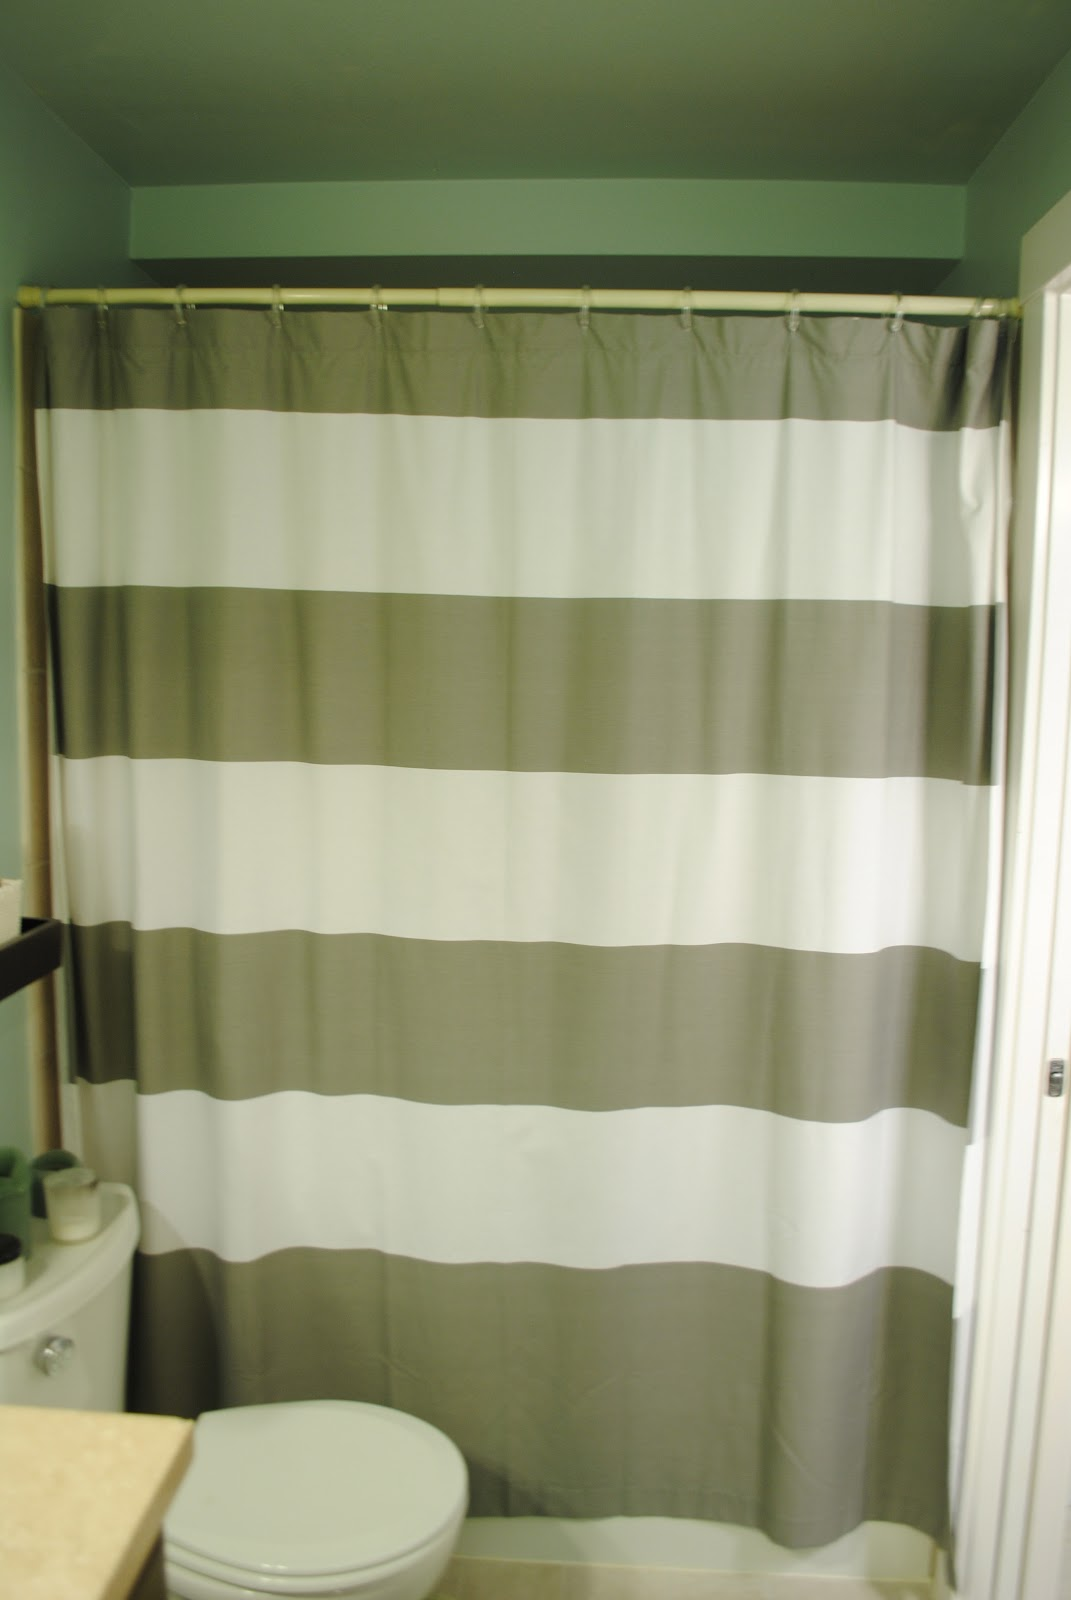 Dark green shower curtains - We Decided To Keep It Even Though I Hate Shower Curtains And It Makes It Really Dark In The Bathroom Worth It Maybe We Ll Get A Light Installed In The